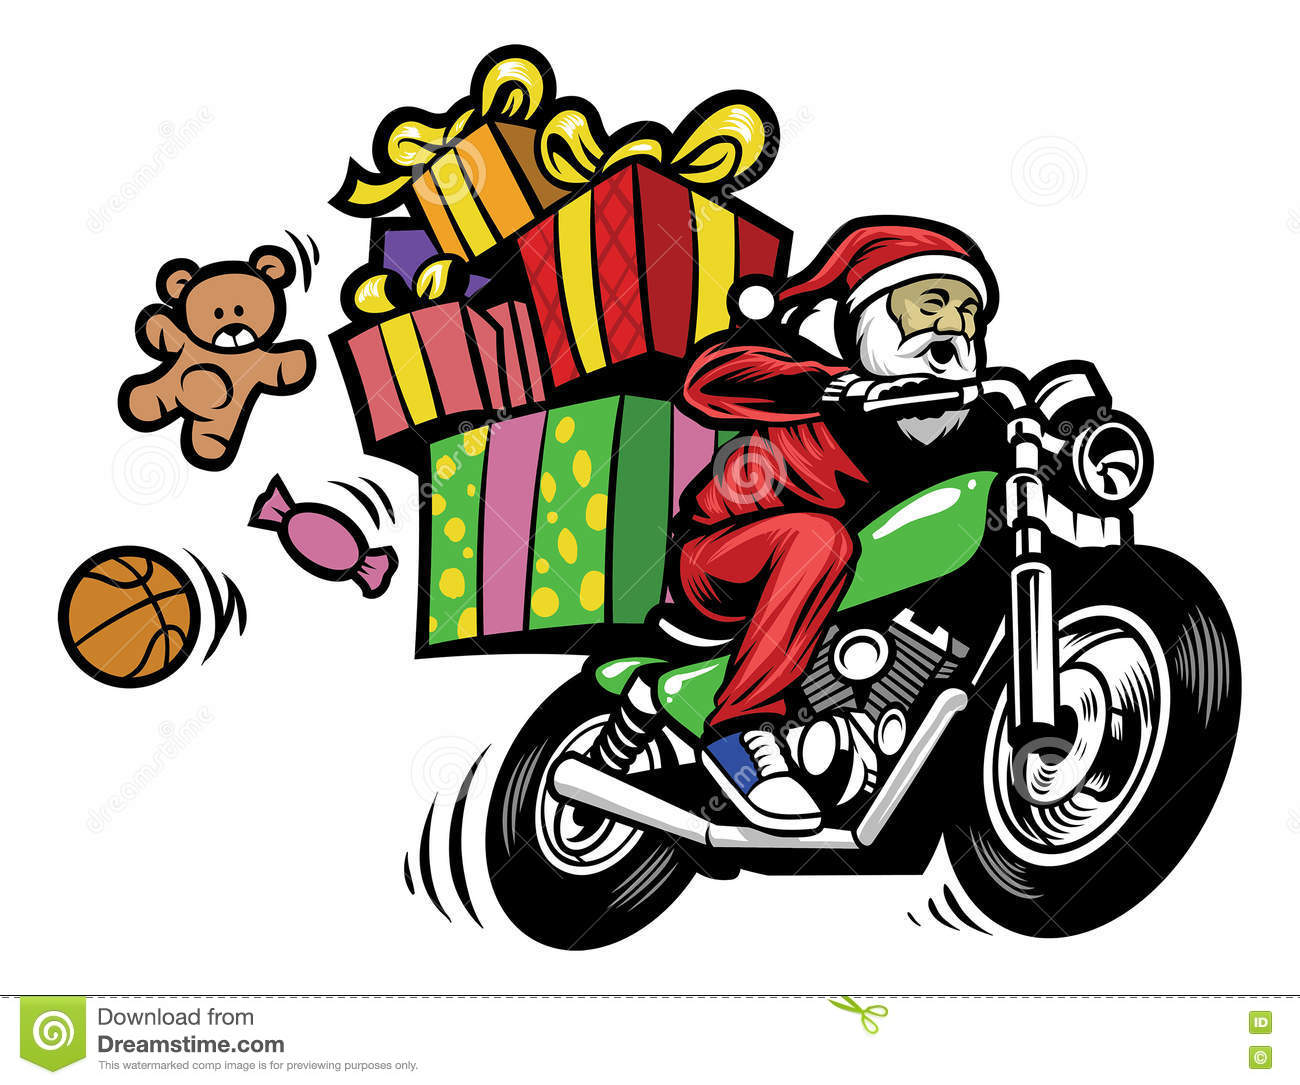 Santa Claus Delivering The Christmas Gift By Riding A Motorcycle.